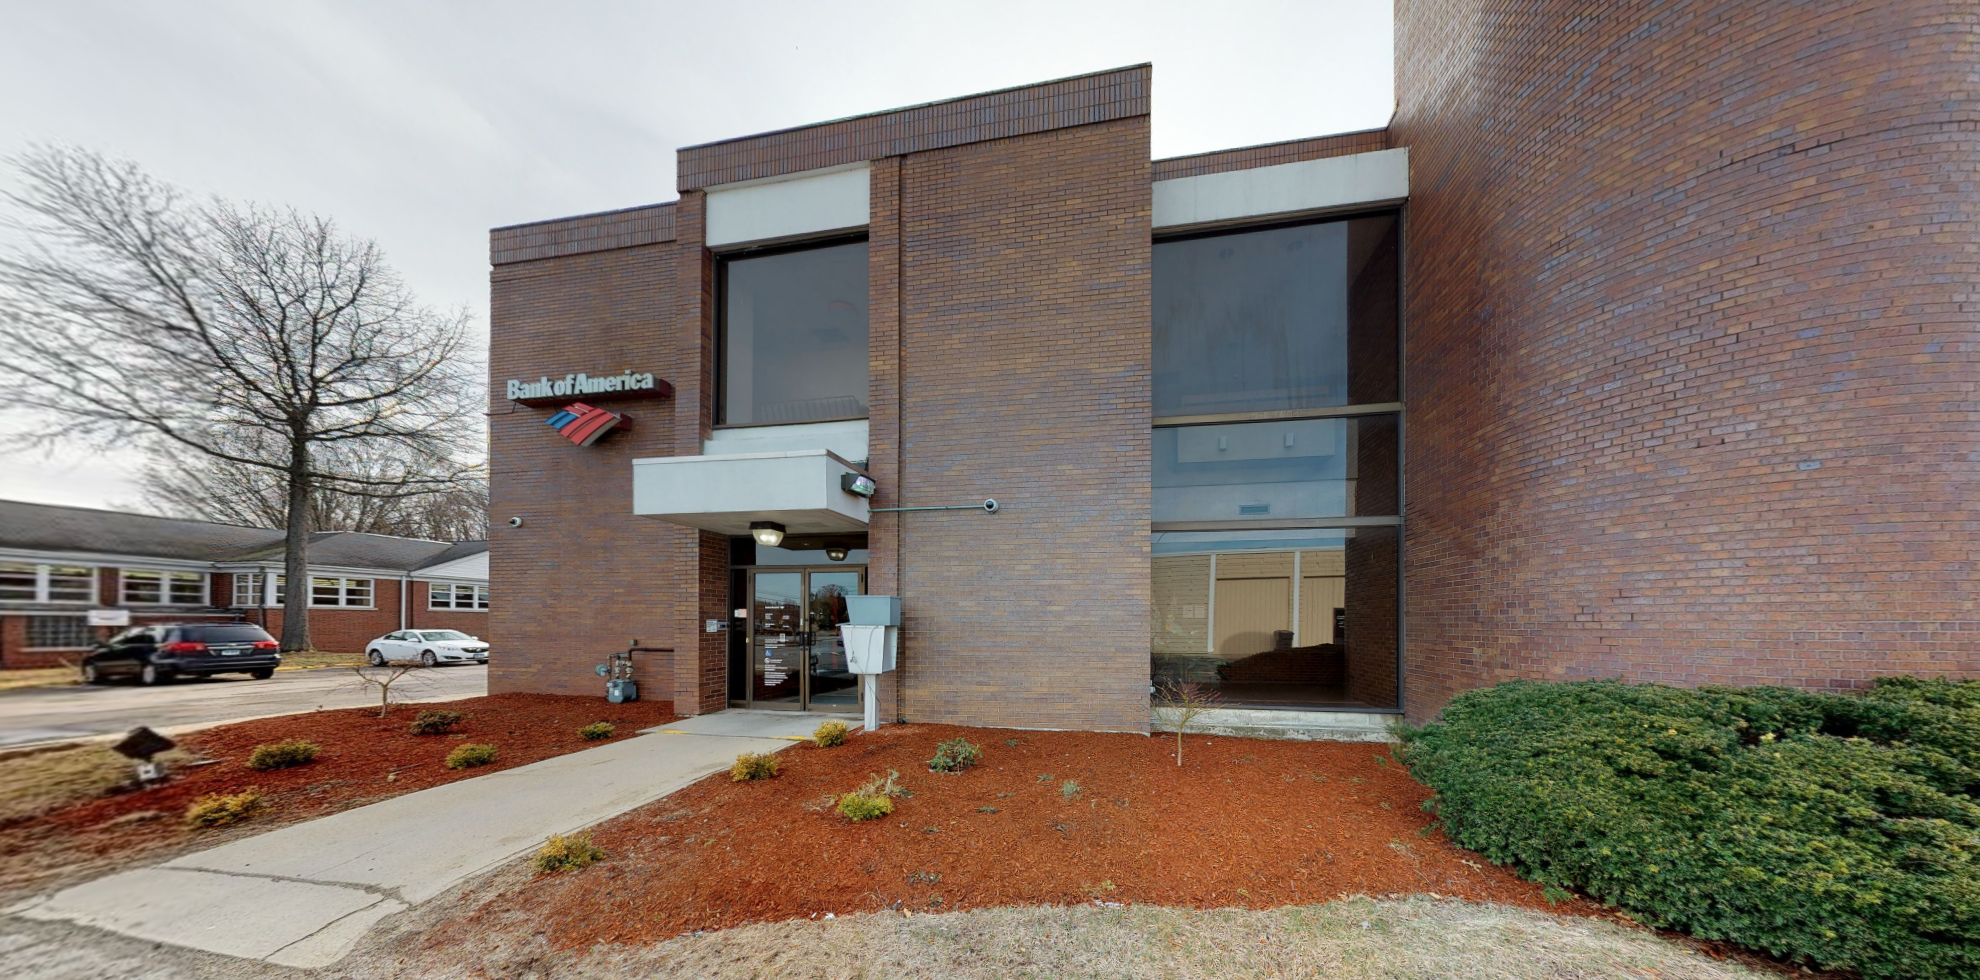 Bank of America financial center with drive-thru ATM | 211 Kennedy Dr, Putnam, CT 06260